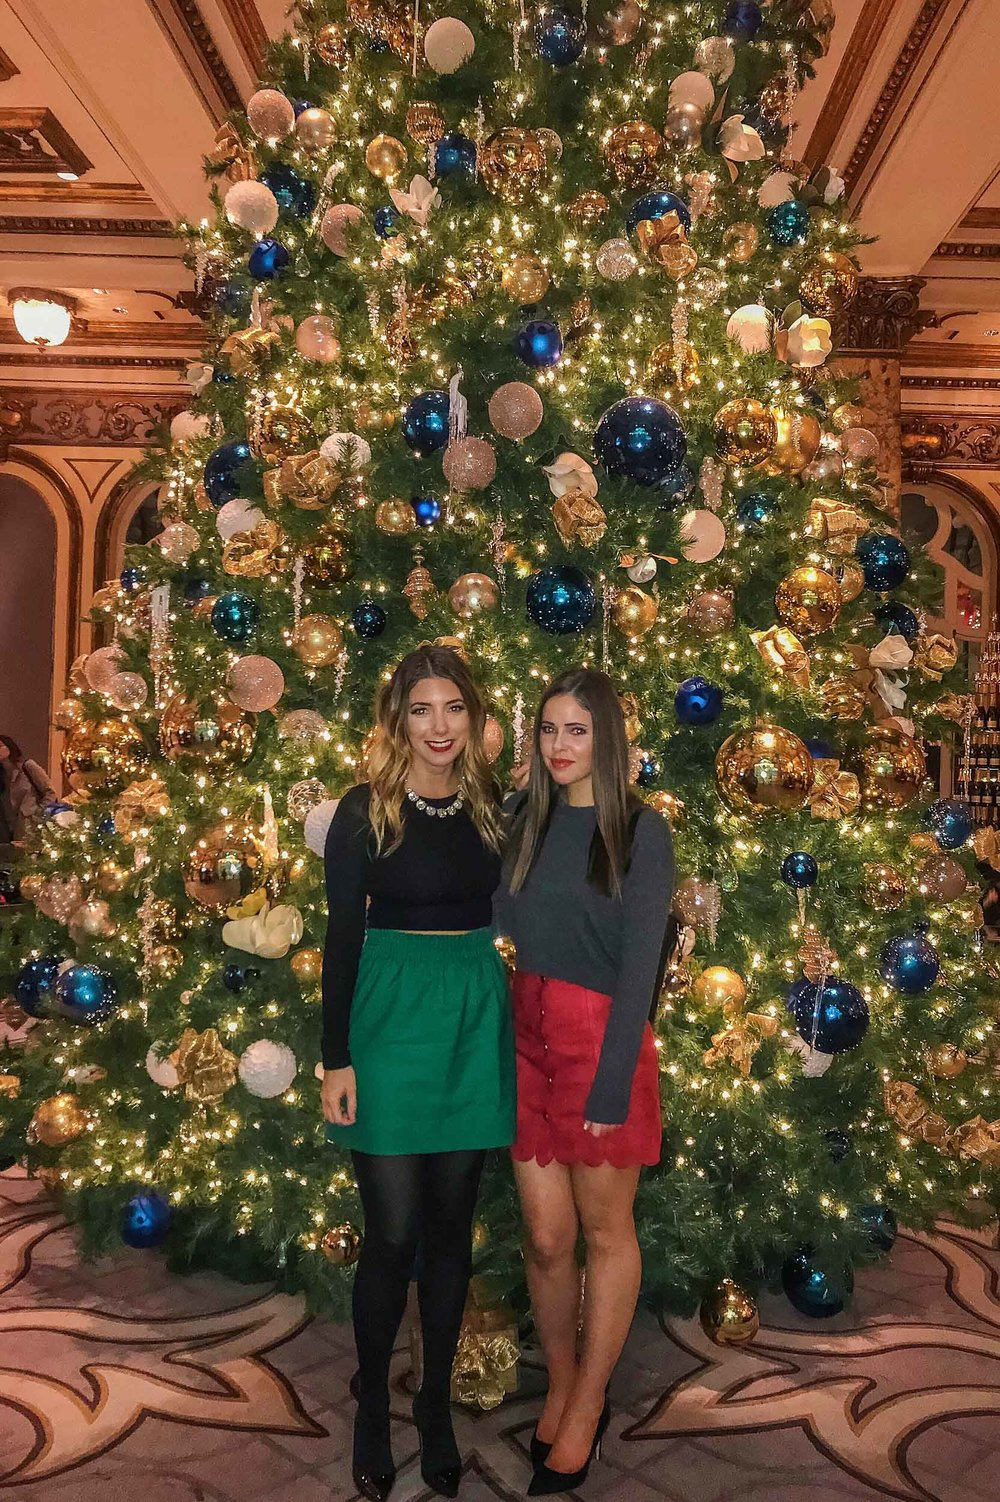 In front of the 23-foot tall Christmas tree at The Fairmont in SF after holiday gingerbread tea time